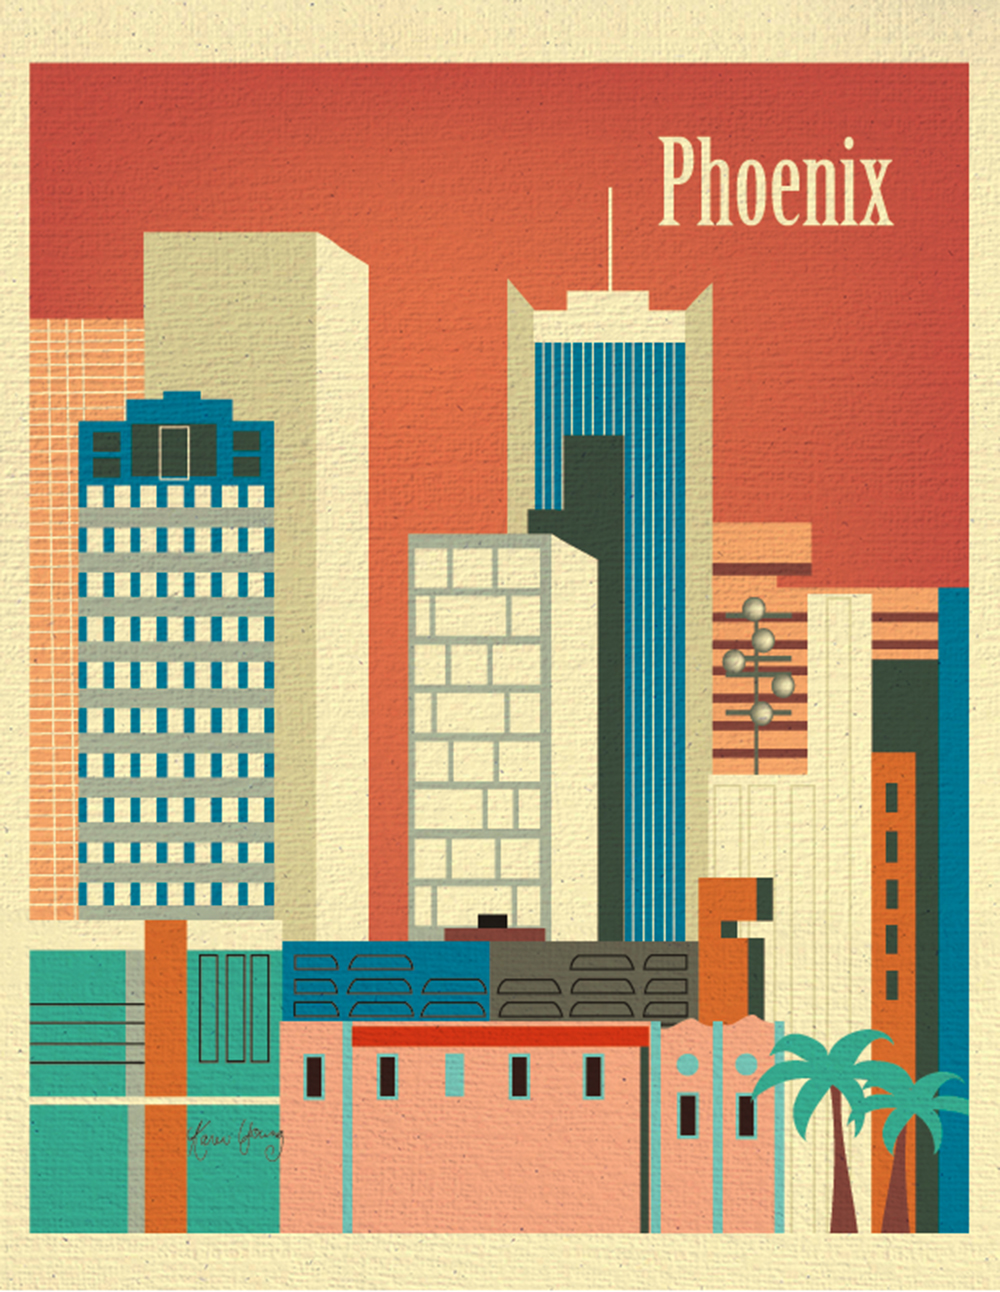 Phoenix, Arizona 11 x 14 Travel Wall Art Poster Print for Home ...